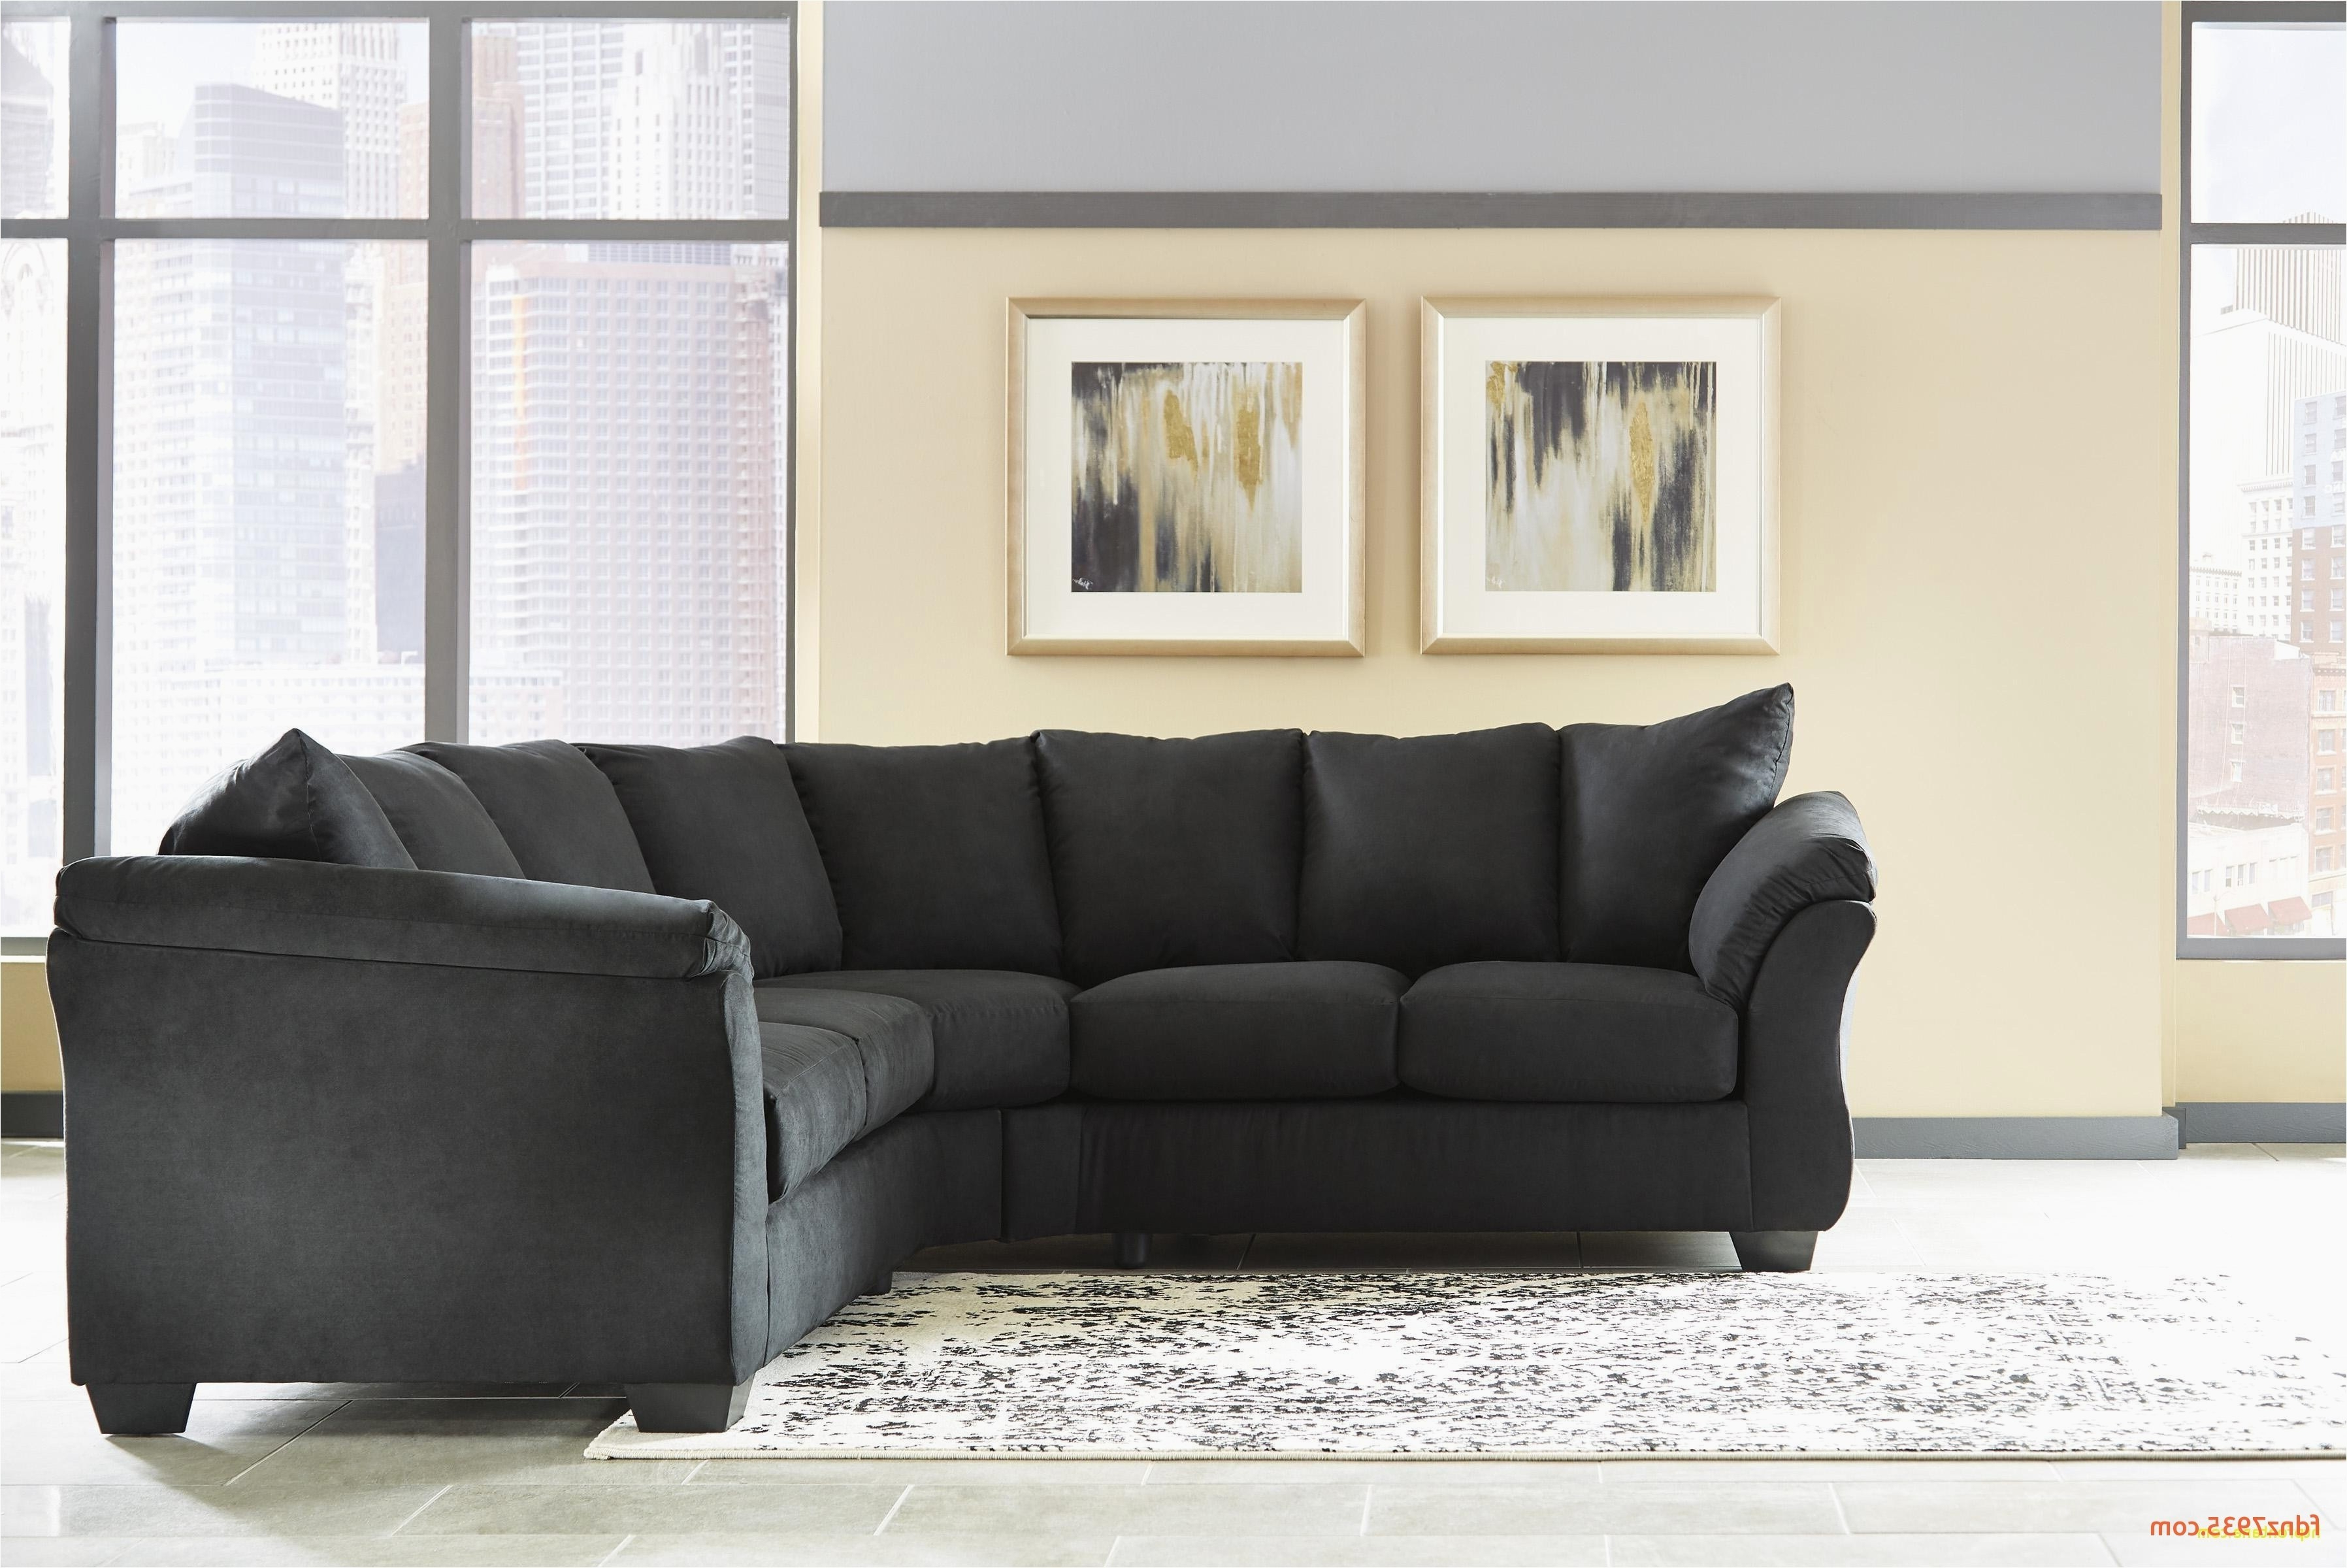 Delano 2 Piece Sectionals With Laf Oversized Chaise Within Well Known 38 Elegant 3 Piece Sectional Sofa With Chaise – Kayla (Gallery 19 of 20)